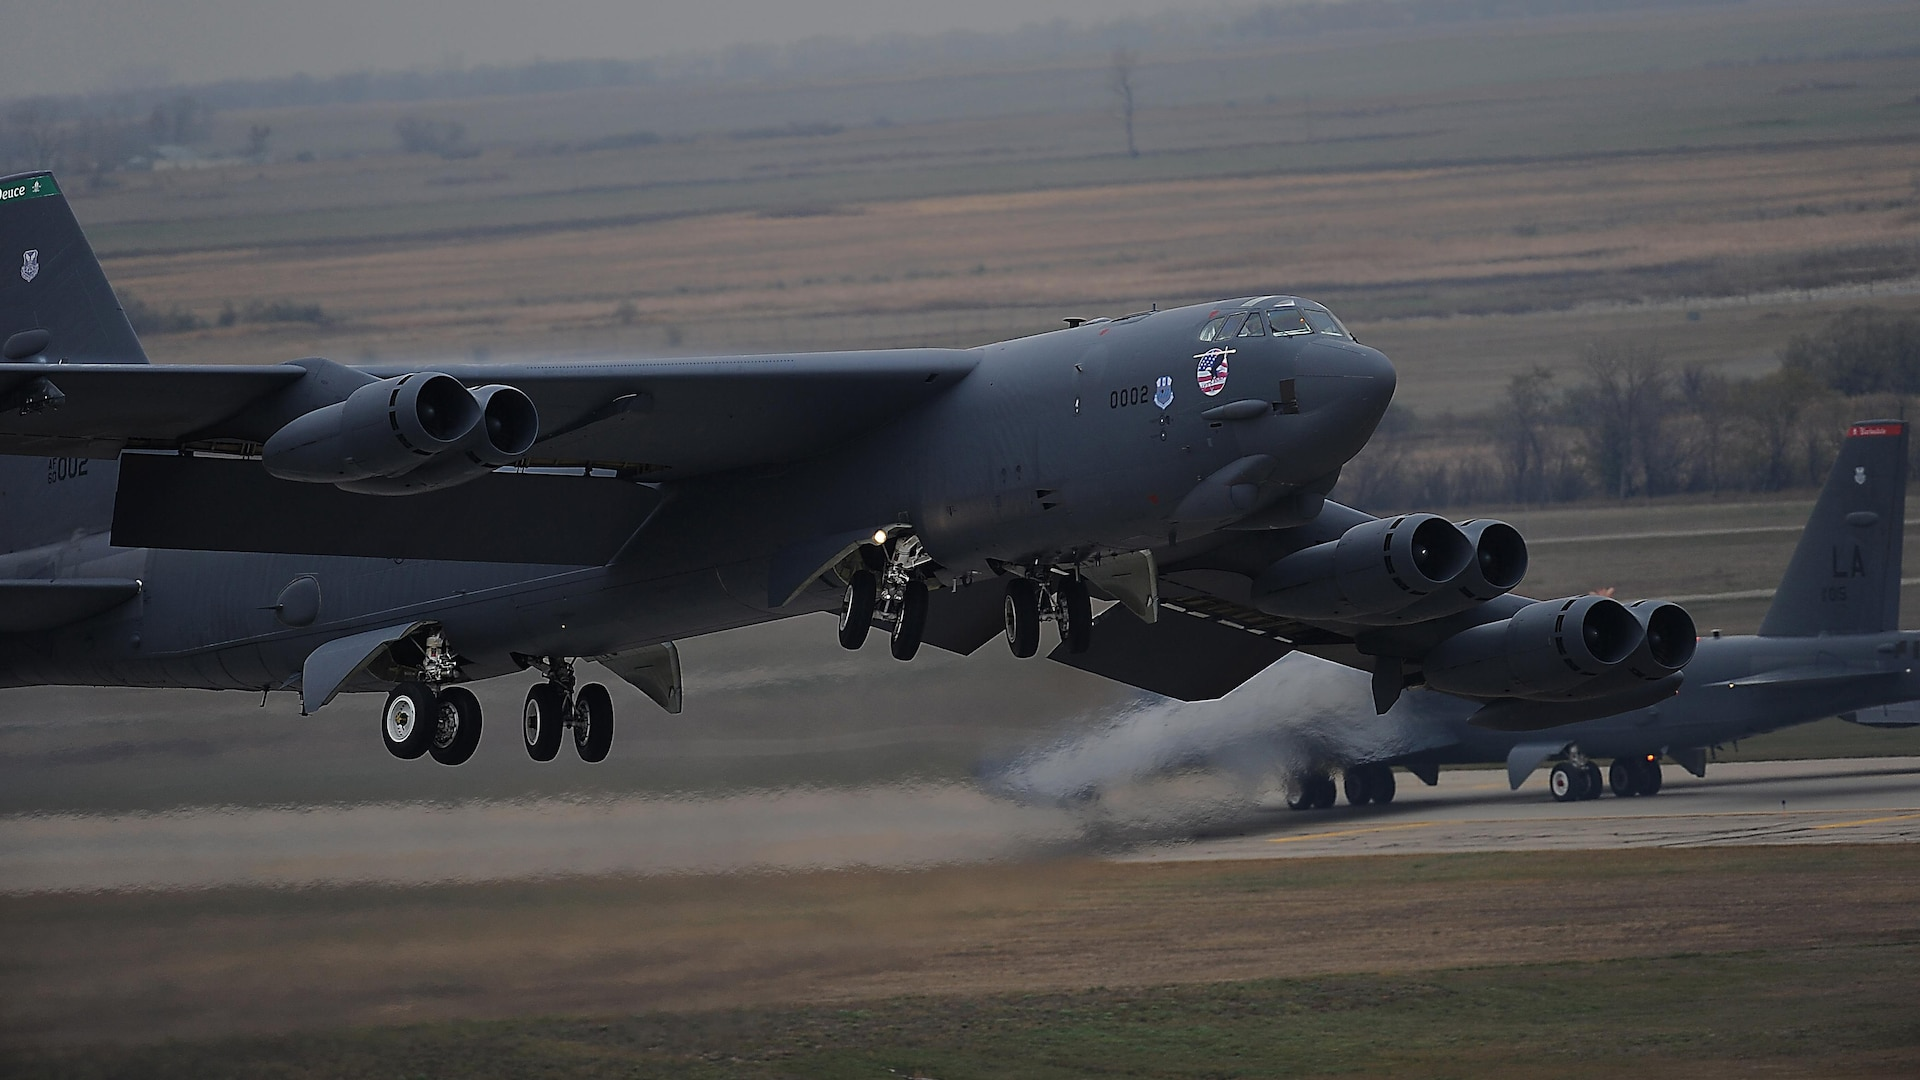 A B-52H Stratofortress assigned to Air Force Global Strike Command (AFGSC) takes off from the flightline at Minot Air Force Base, N.D., Oct. 30, 2016, during exercise Global Thunder 17. AFGSC supports U.S. Strategic Command's (USSTRATCOM) global strike and nuclear deterrence missions by providing strategic assets, including bombers like the B-52 and B-2, to ensure a safe, secure, effective and ready deterrent force. Global Thunder is an annual training event that assesses command and control functionality in all USSTRATCOM mission areas and affords component commands a venue to evaluate their joint operational readiness. (U.S. Air Force photo by Tech. Sgt. Evelyn Chavez)